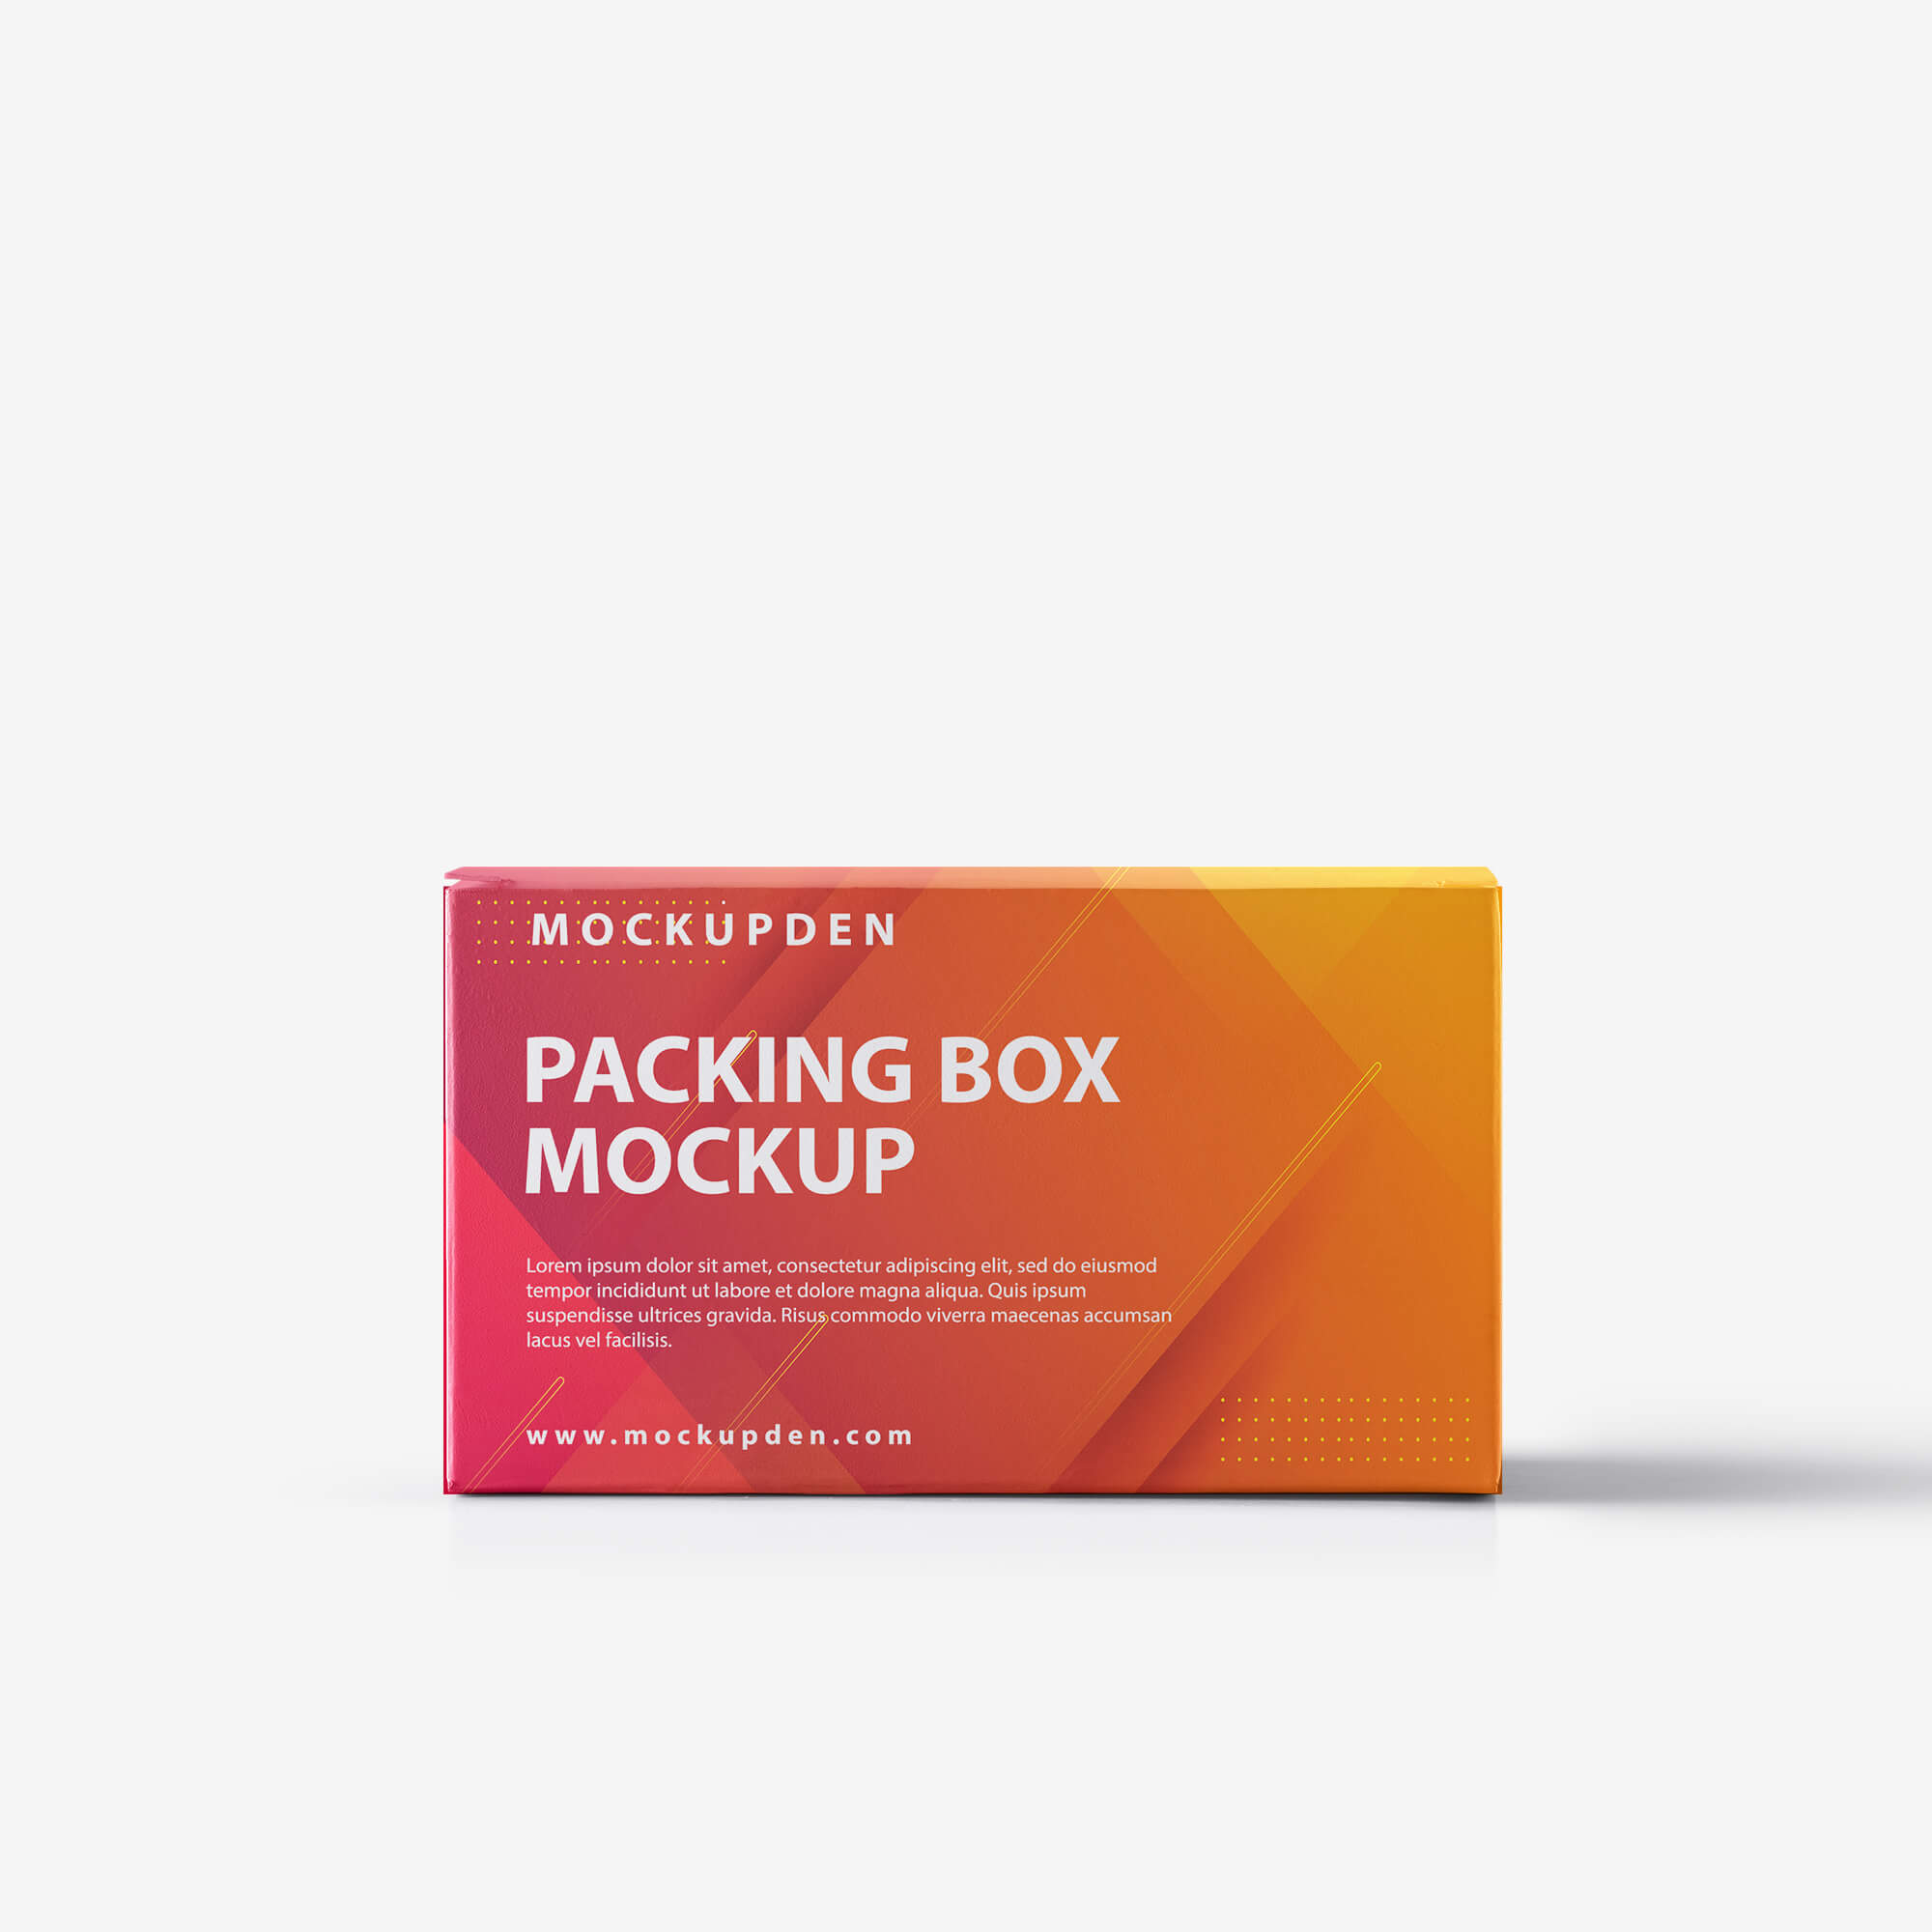 Design Free Packing Box Mockup PSD Template